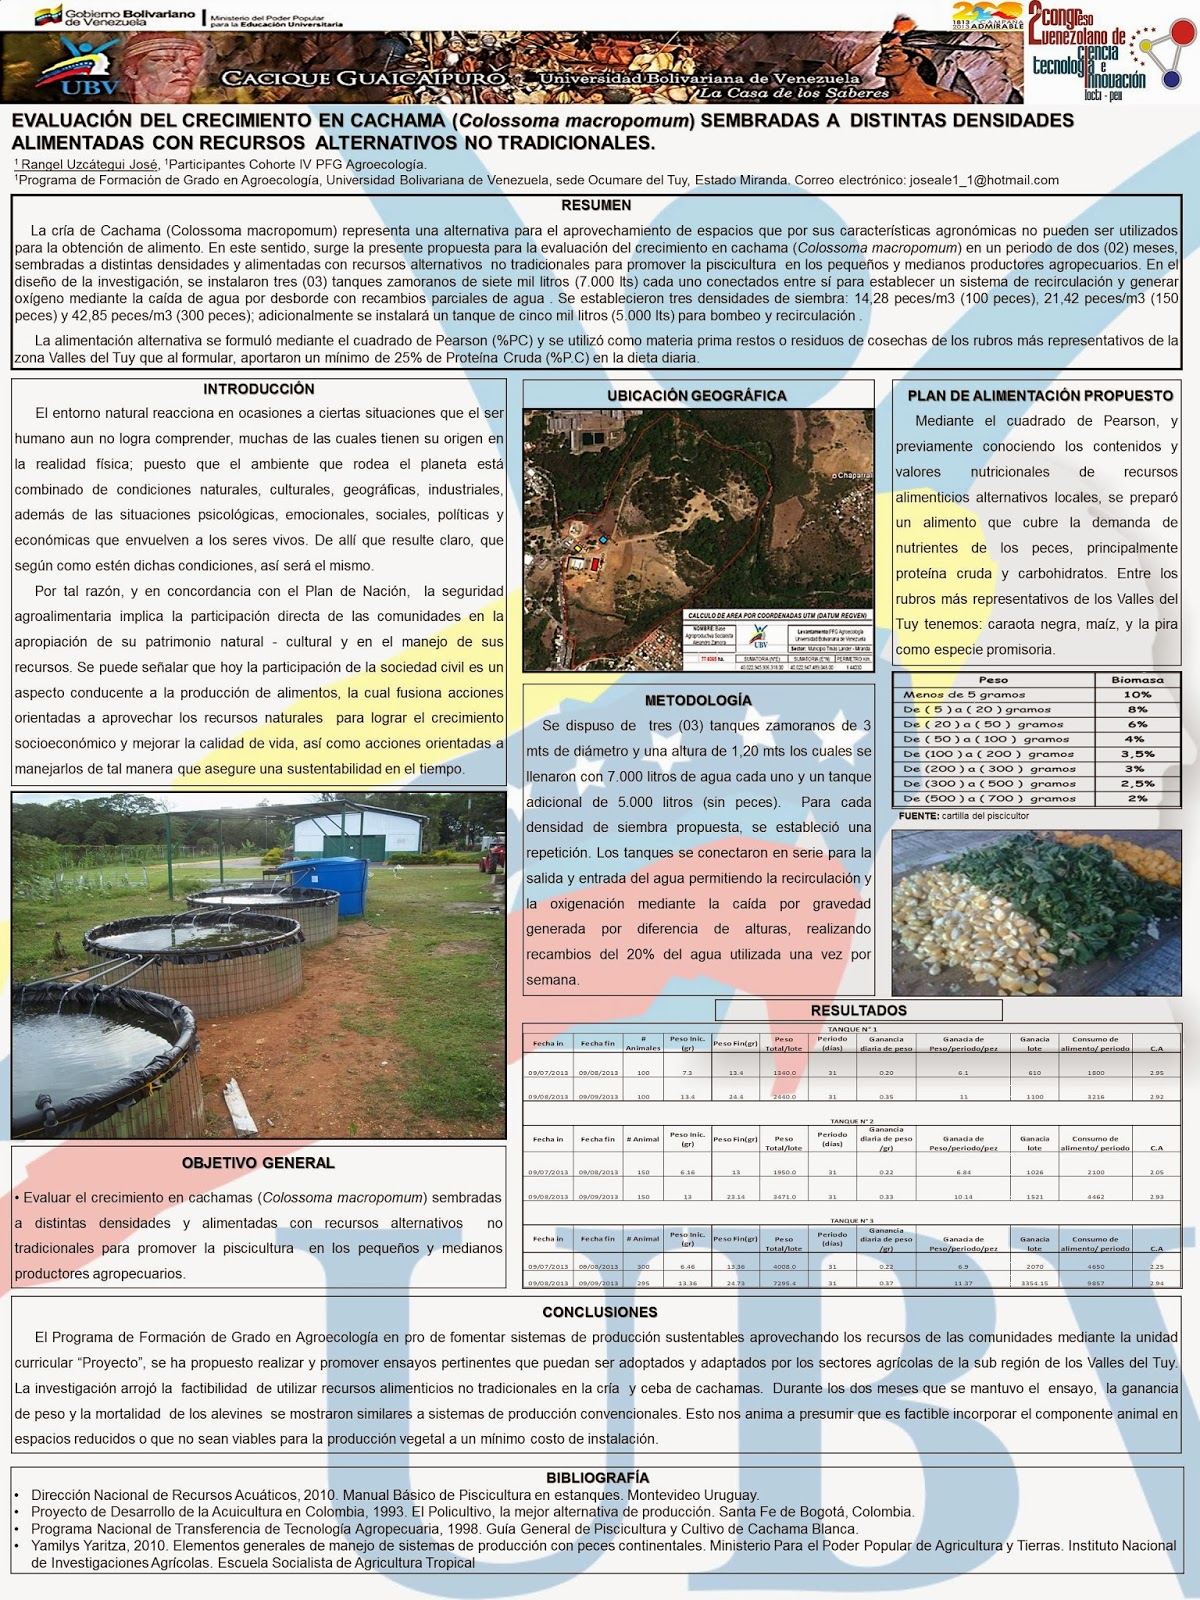 Www agroecologia vallesdeltuy blogspot com 2do congreso for Tanques para cachamas